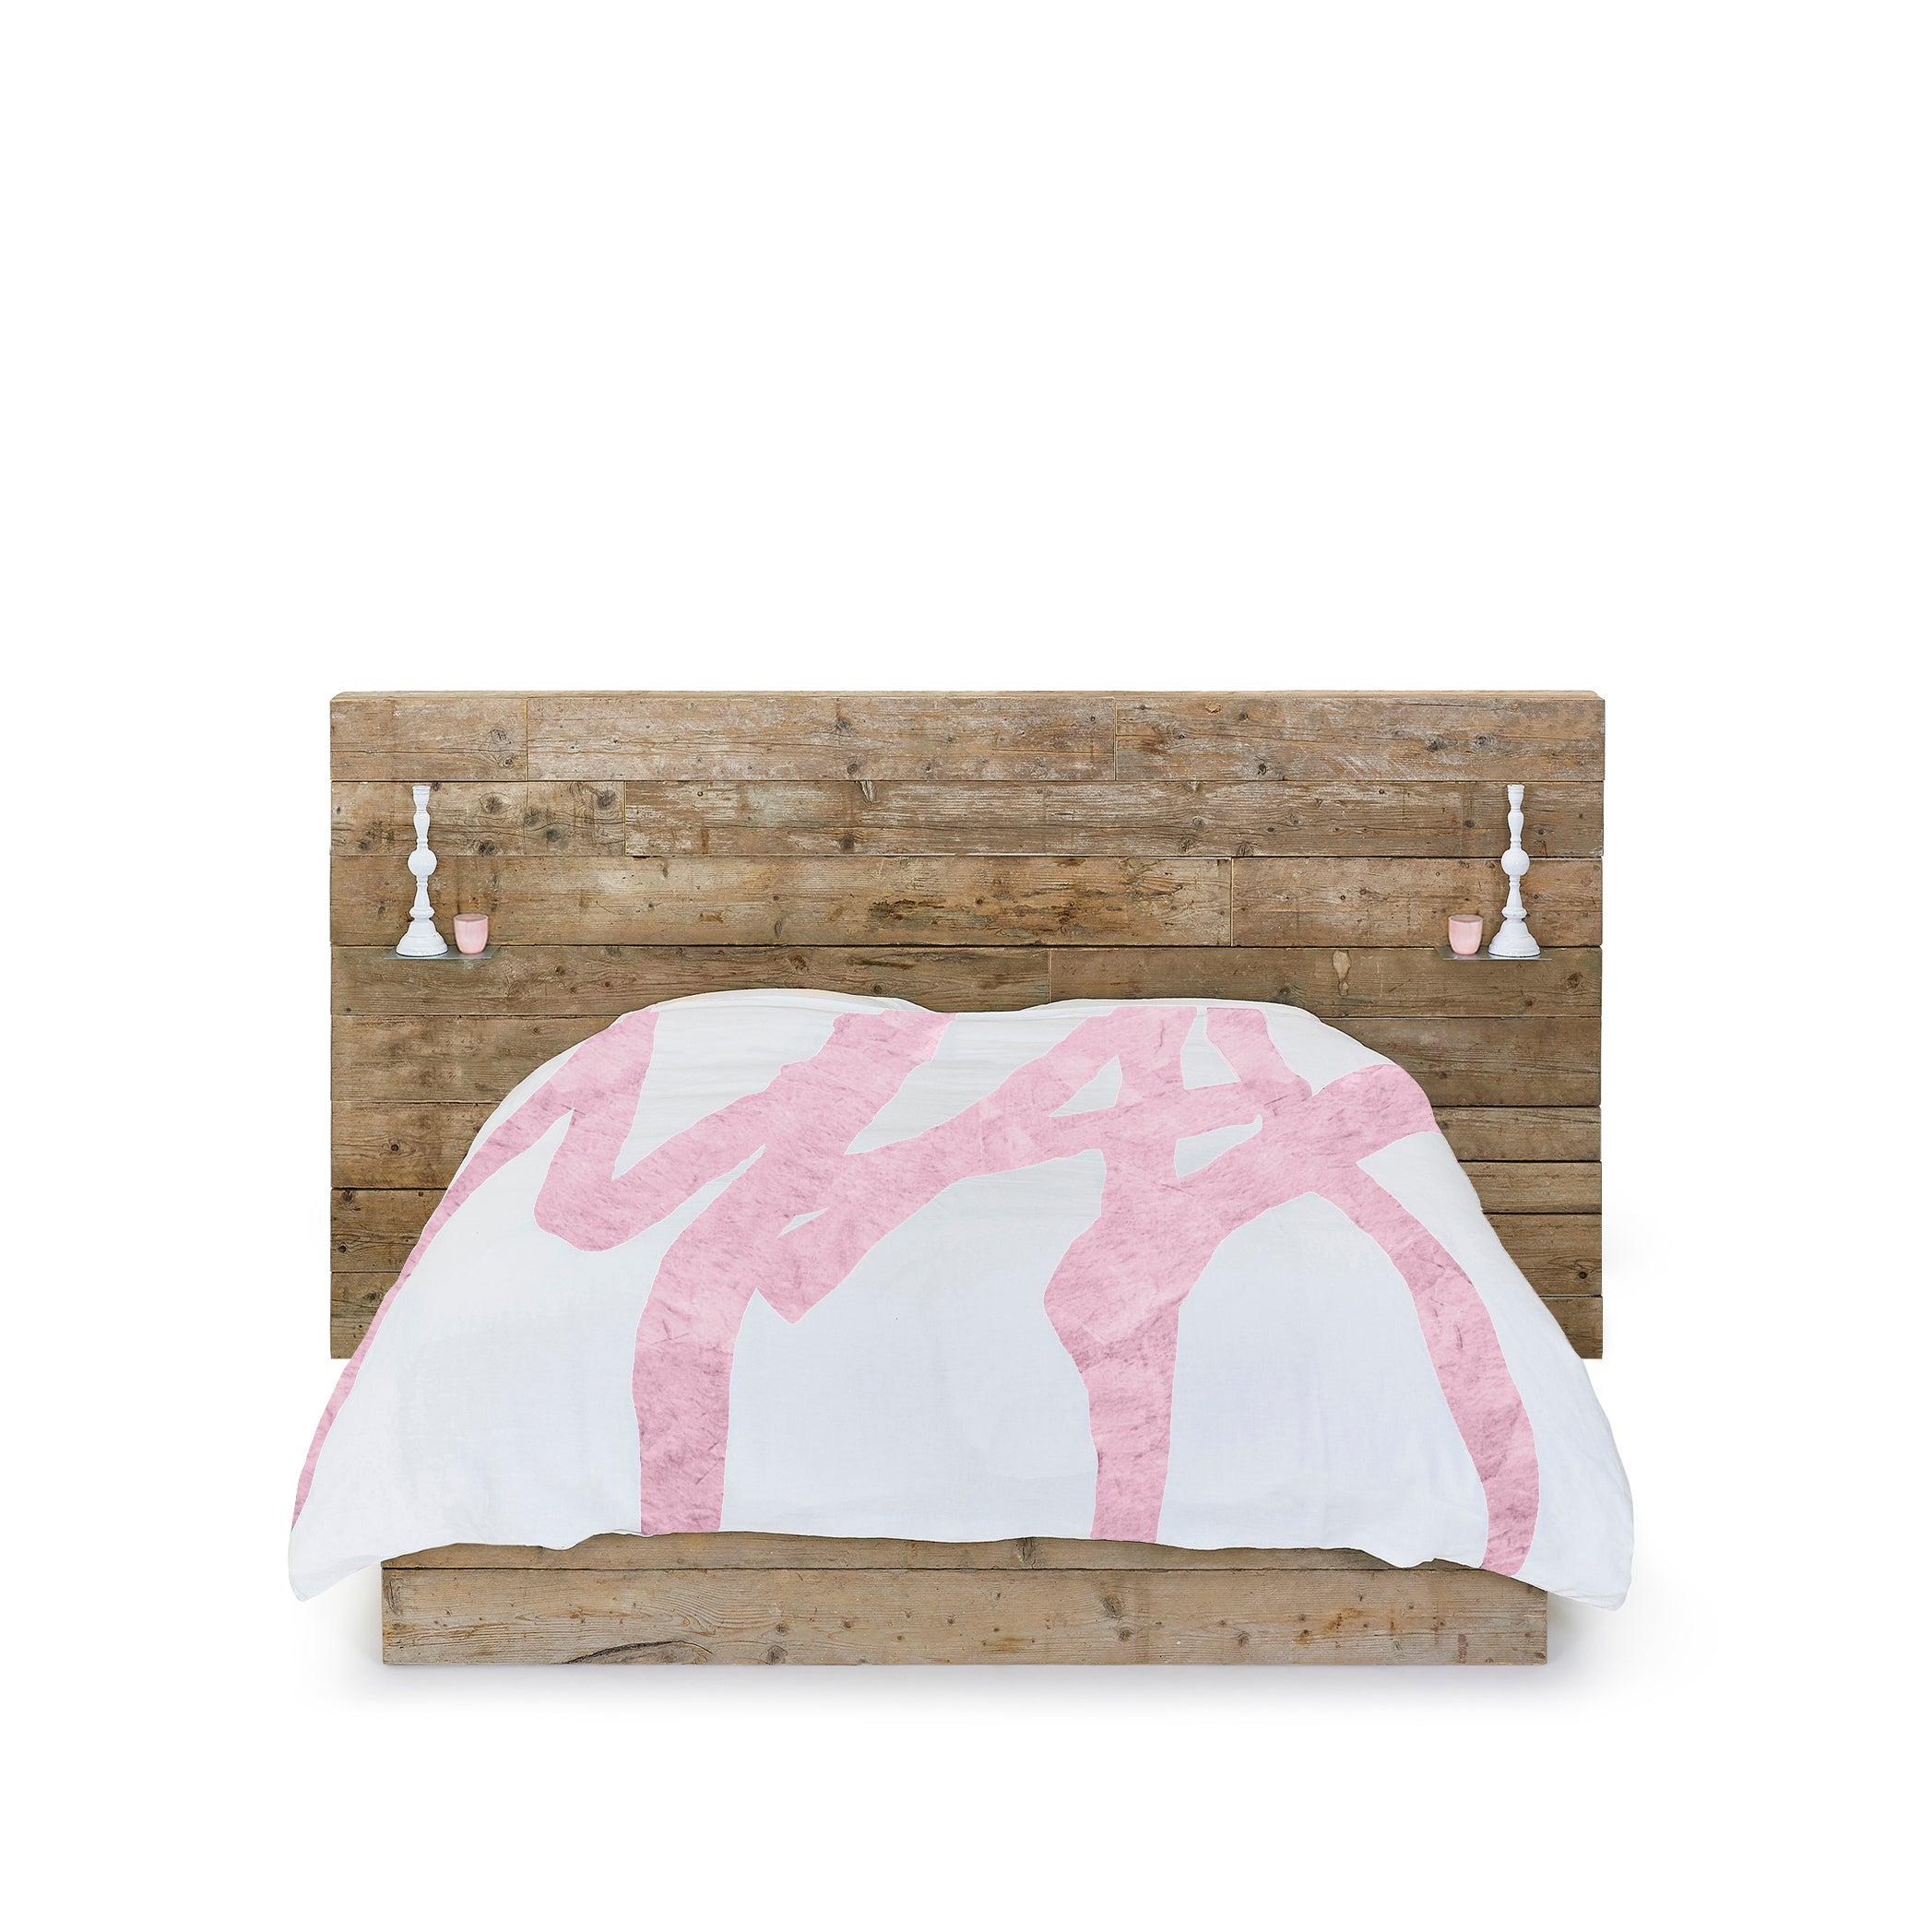 Bespoke Word Linen Duvet Cover in Rose Pink, Double